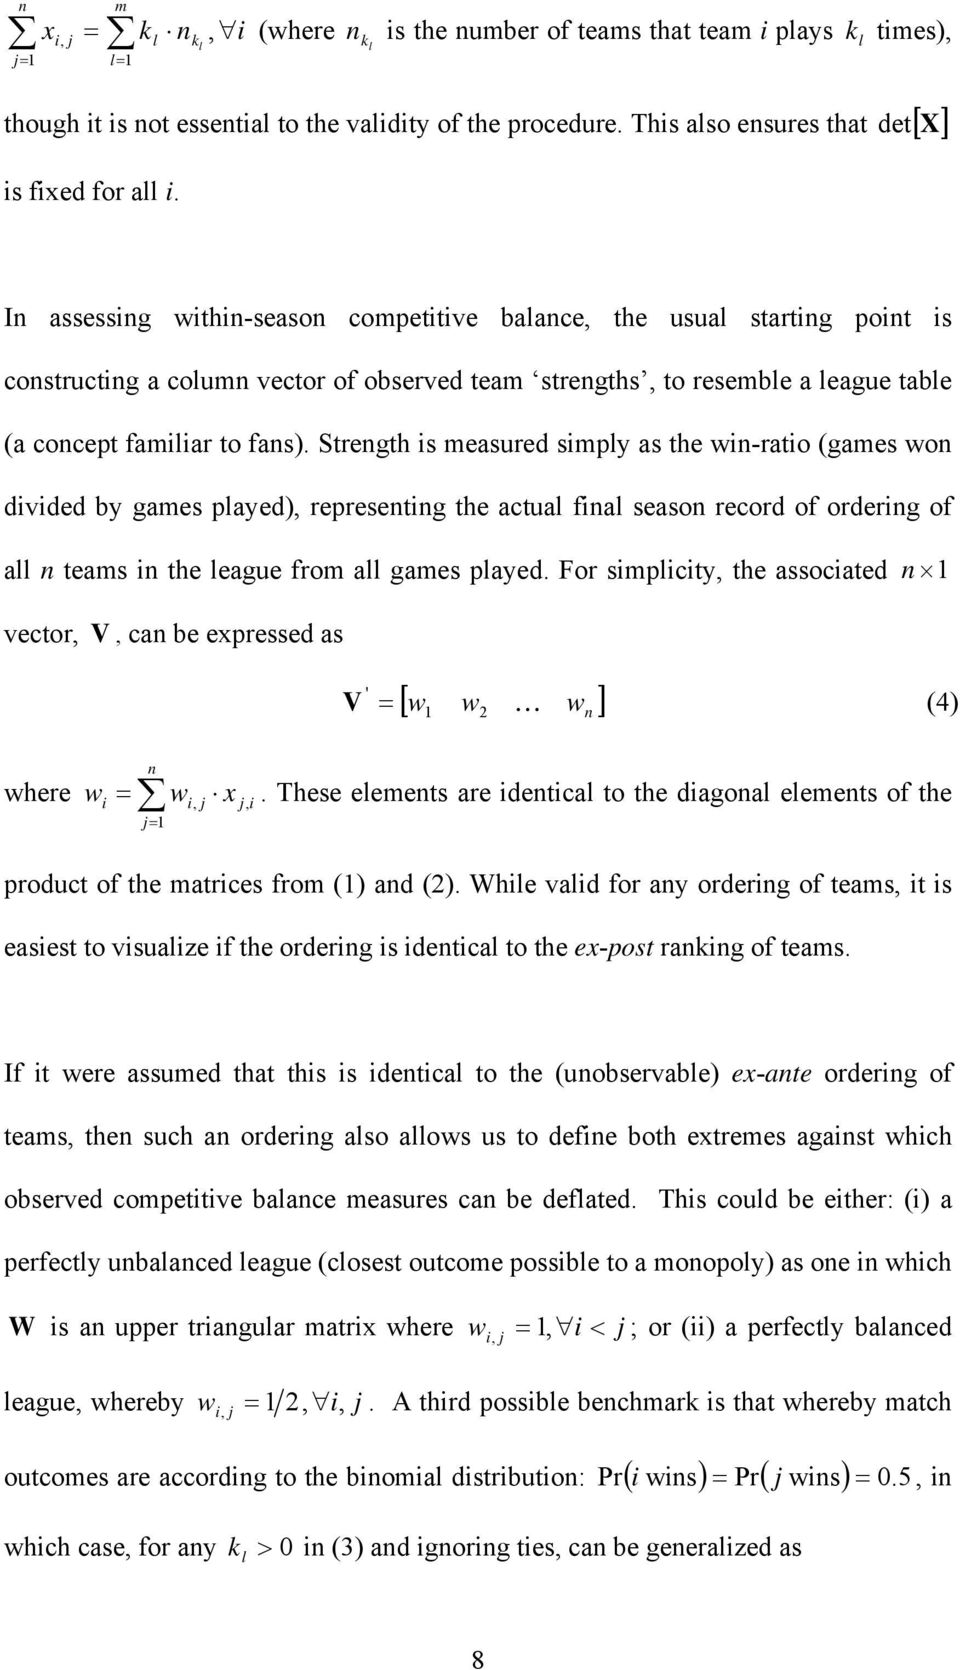 Stregth is measured simply as the wi-ratio (games wo divided by games played), represetig the actual fial seaso record of orderig of all teams i the league from all games played.